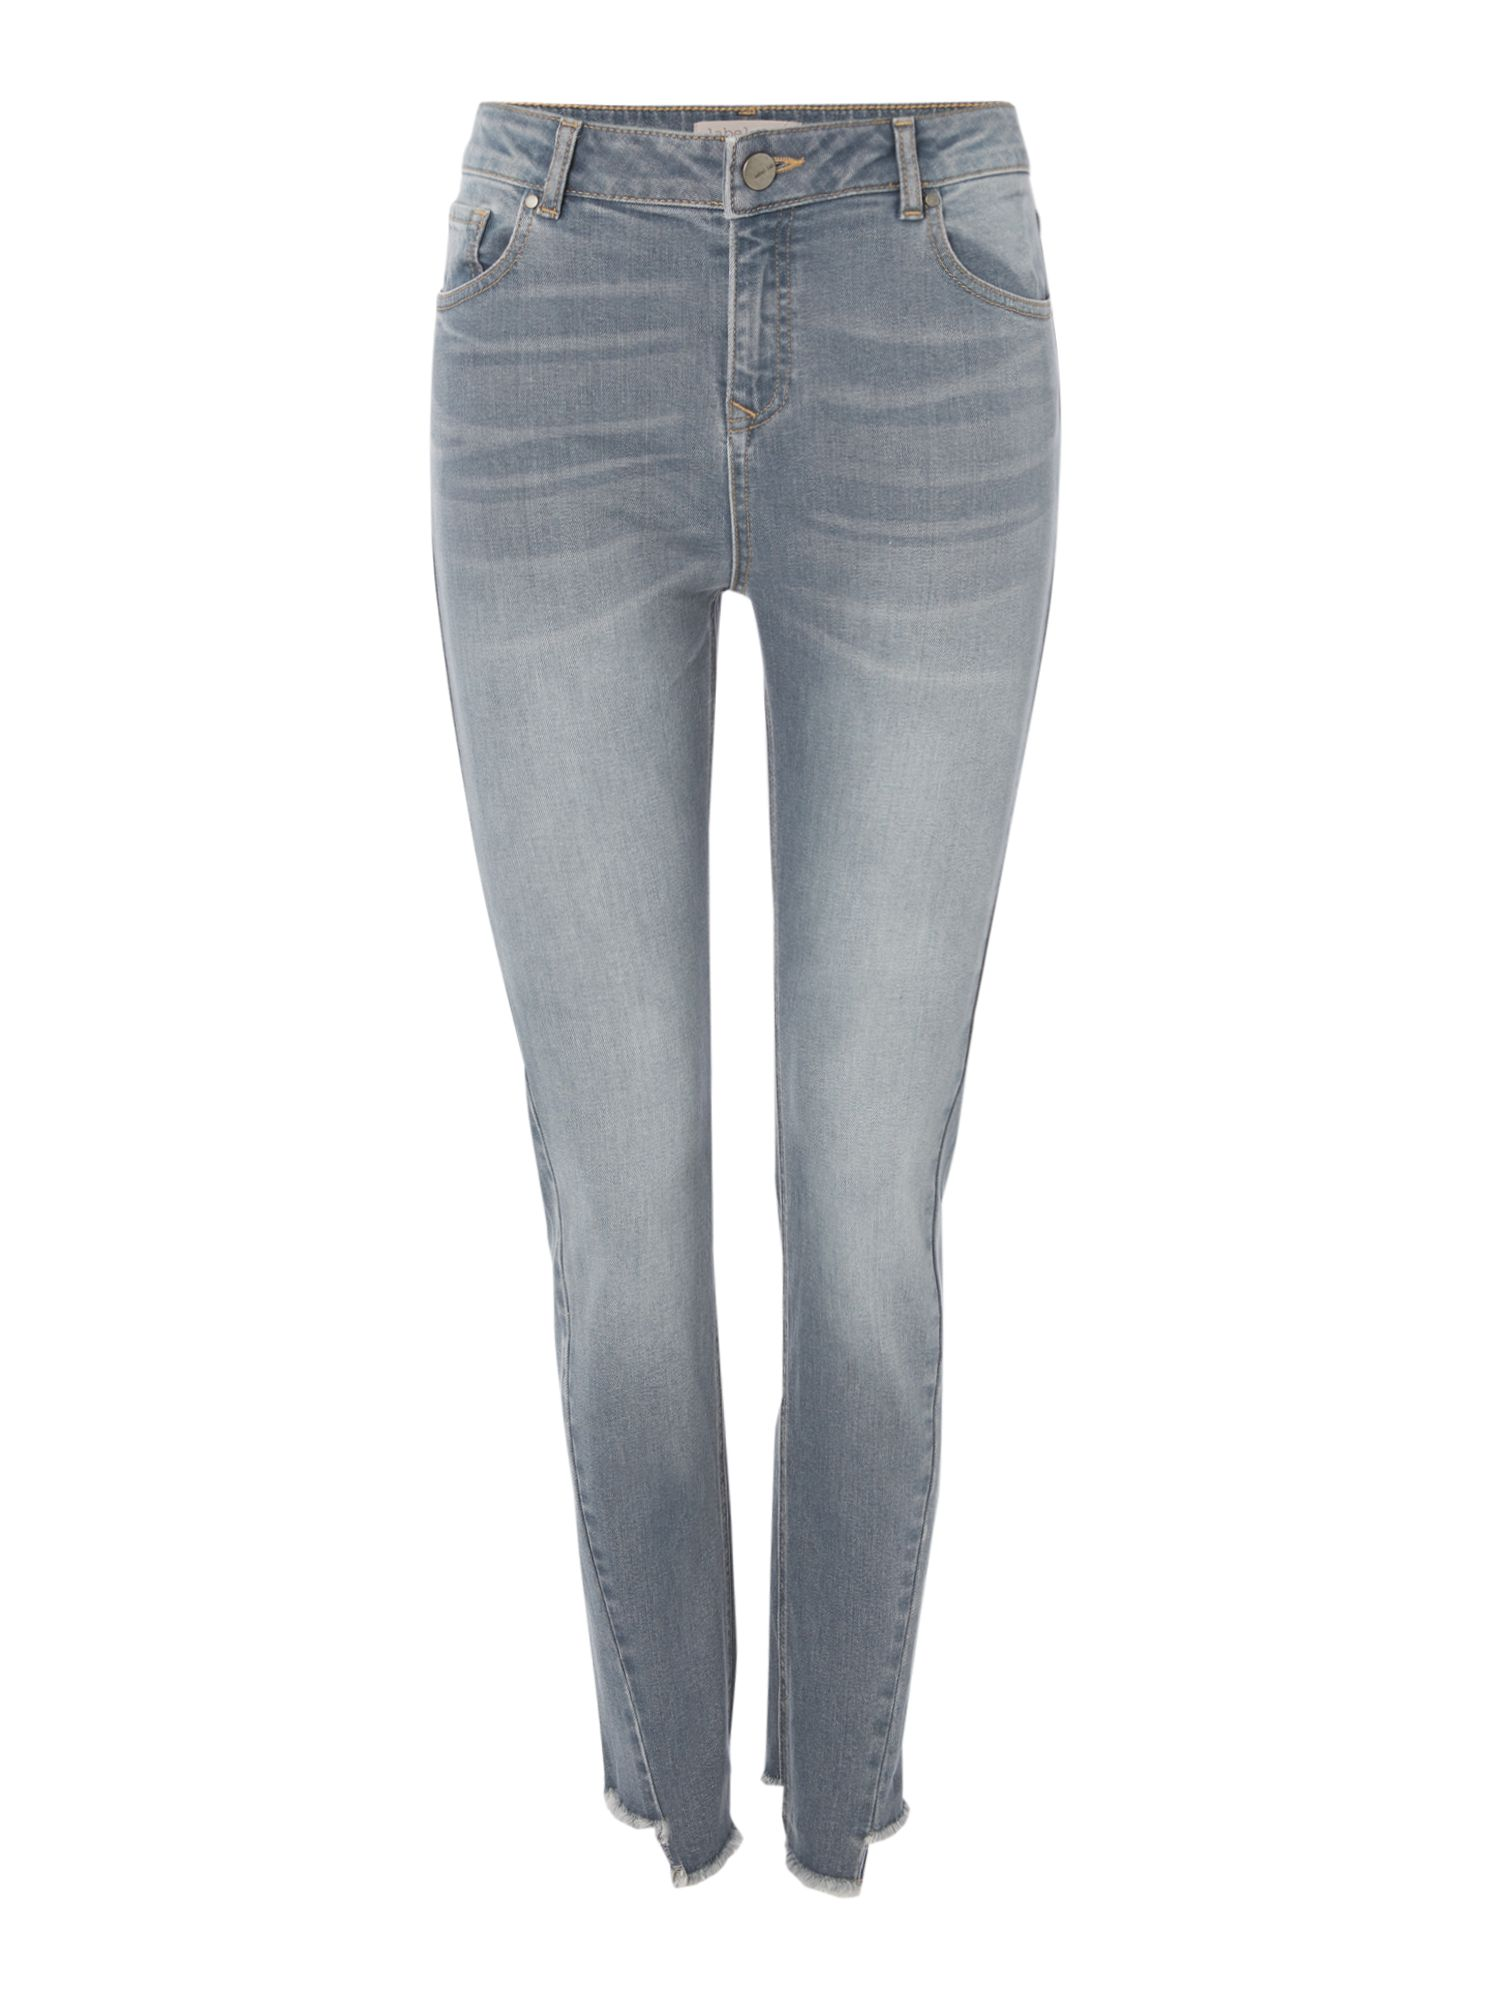 Label Lab Stepped Skinny Jean, Grey